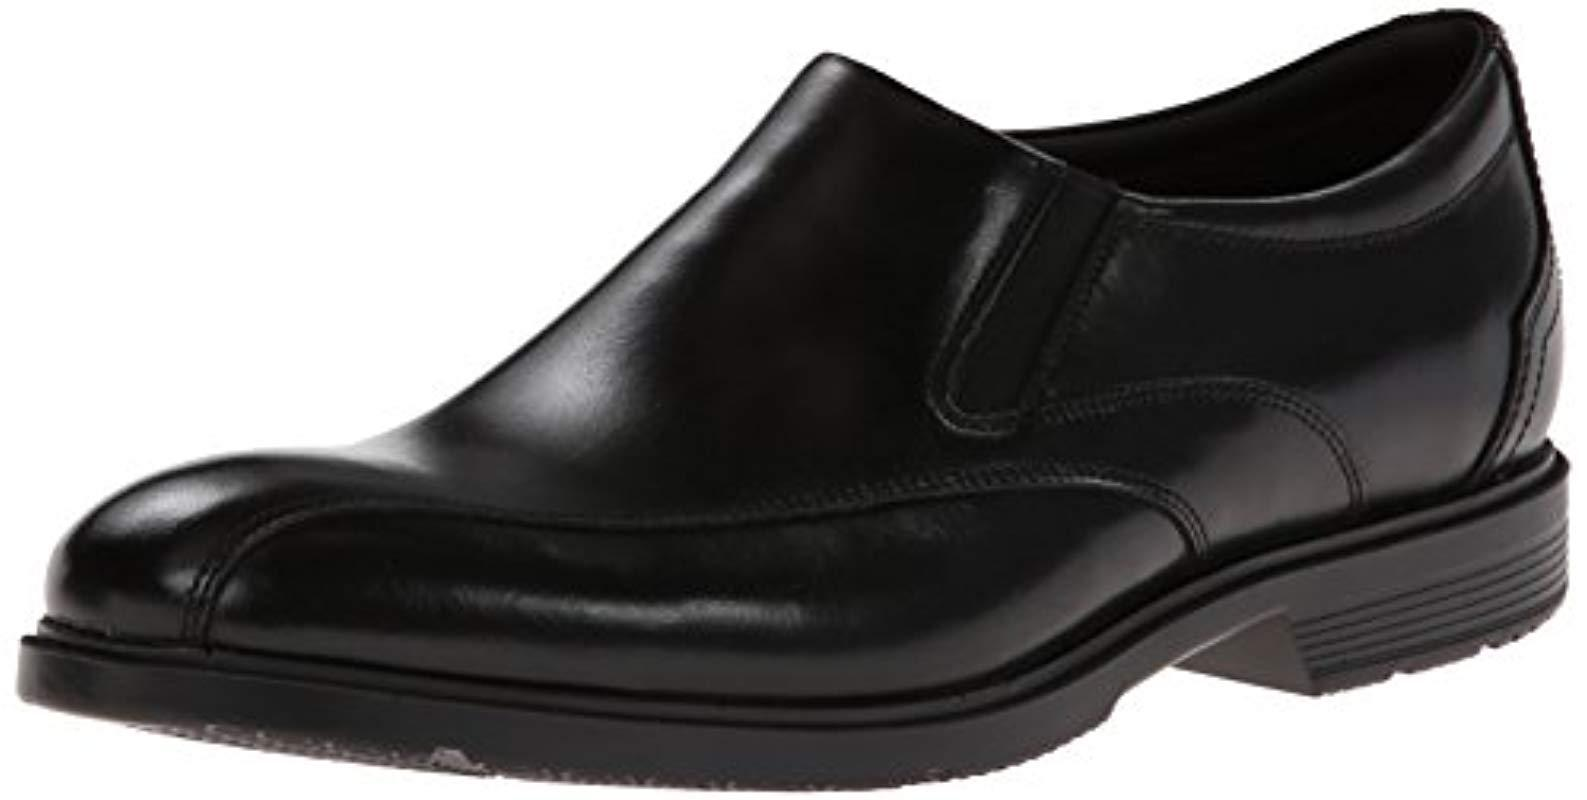 644e19c882a Rockport - Black City Smart Bike Toe Slip-on Loafer for Men - Lyst. View  fullscreen